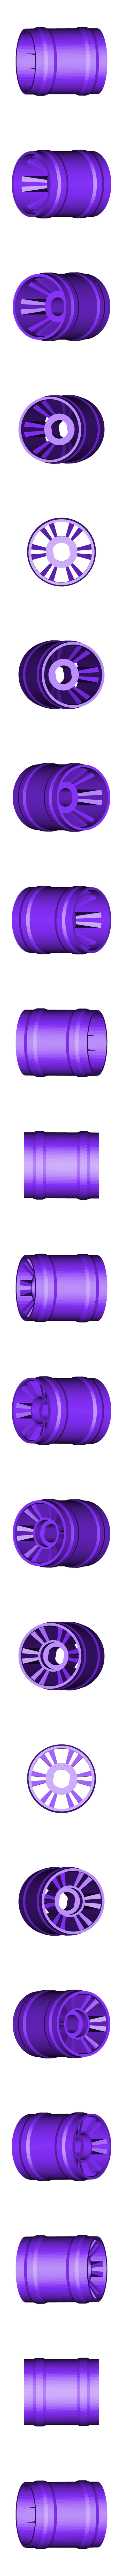 OpenRC_F1_250scaled_-_Rear_Rim_v6-1.STL Download free STL file OpenRC F1 250% scaled • Template to 3D print, colorFabb